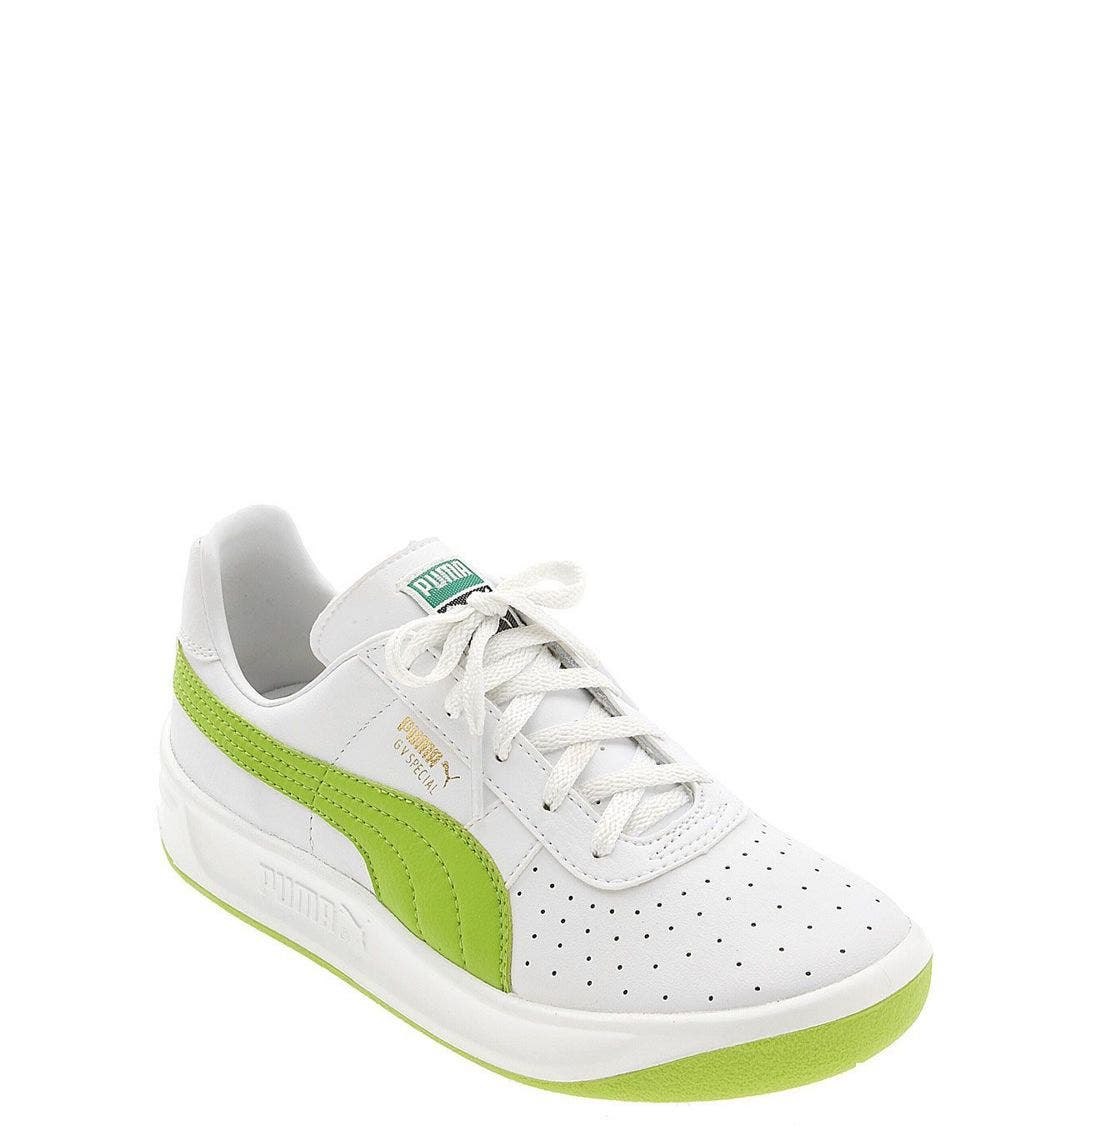 Main Image - PUMA 'GV Special Shine' Sneaker (Baby, Walker, Toddler, Little Kid & Big Kid)